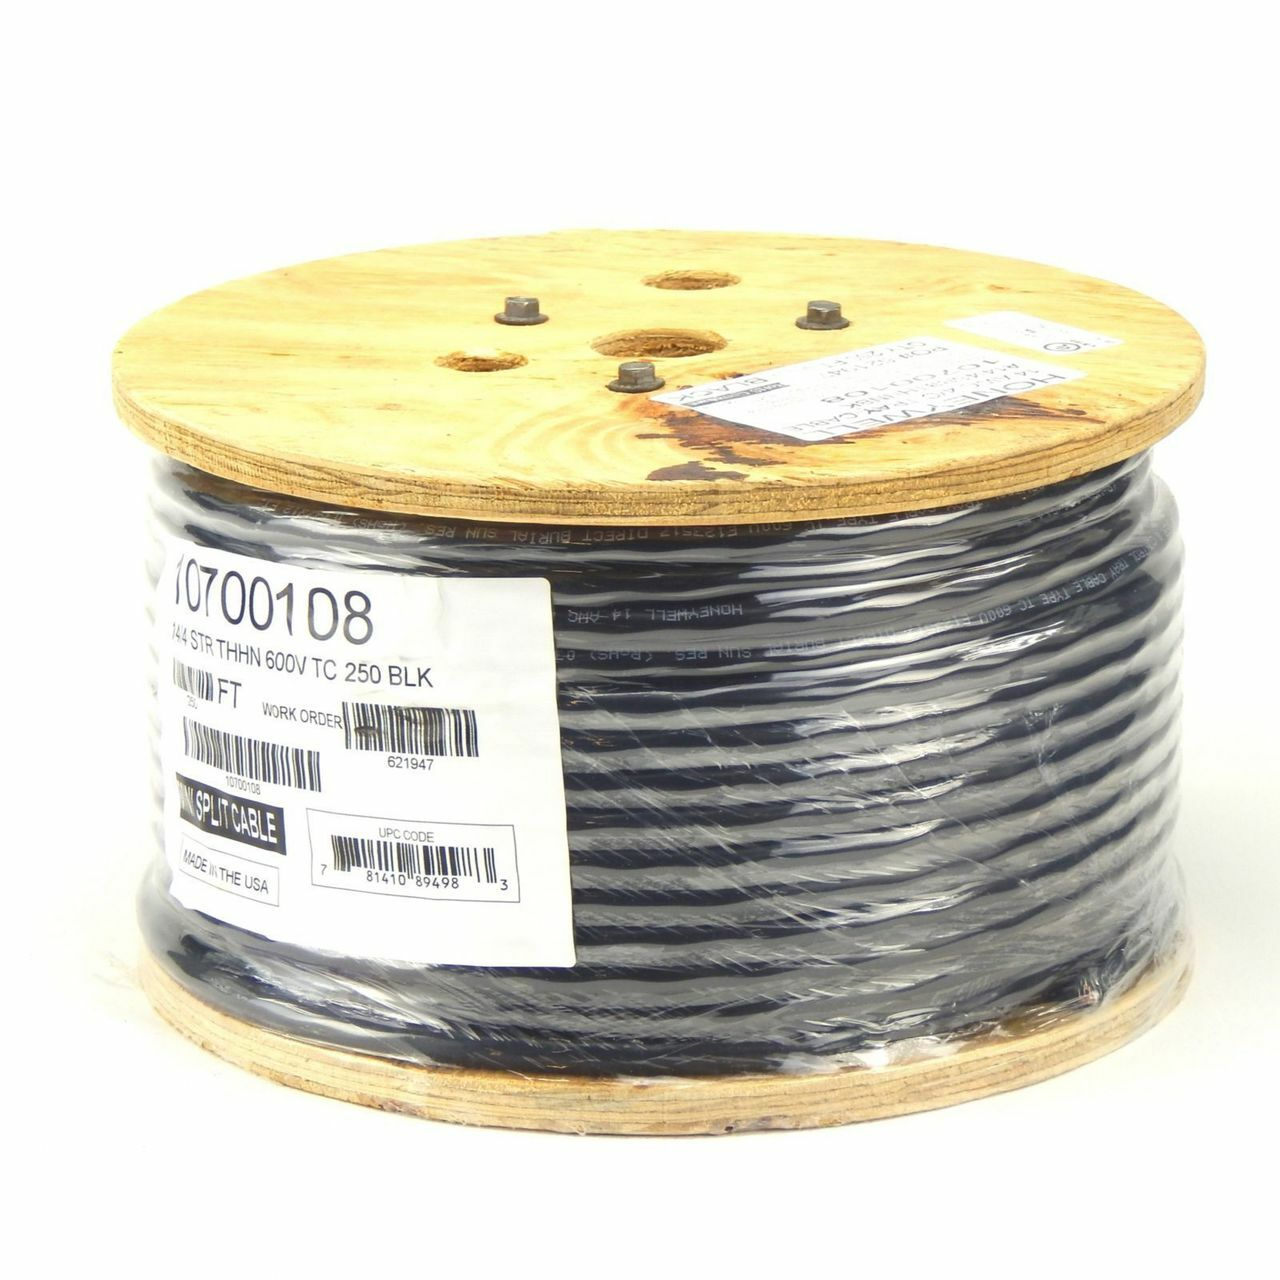 Honeywell 10750108 250 Foot Reel 14 4 Metal Clad Mini Split Cable 500 Ft 2 1 Stranded Thhn Single Conductor Electrical Wire Black Awg